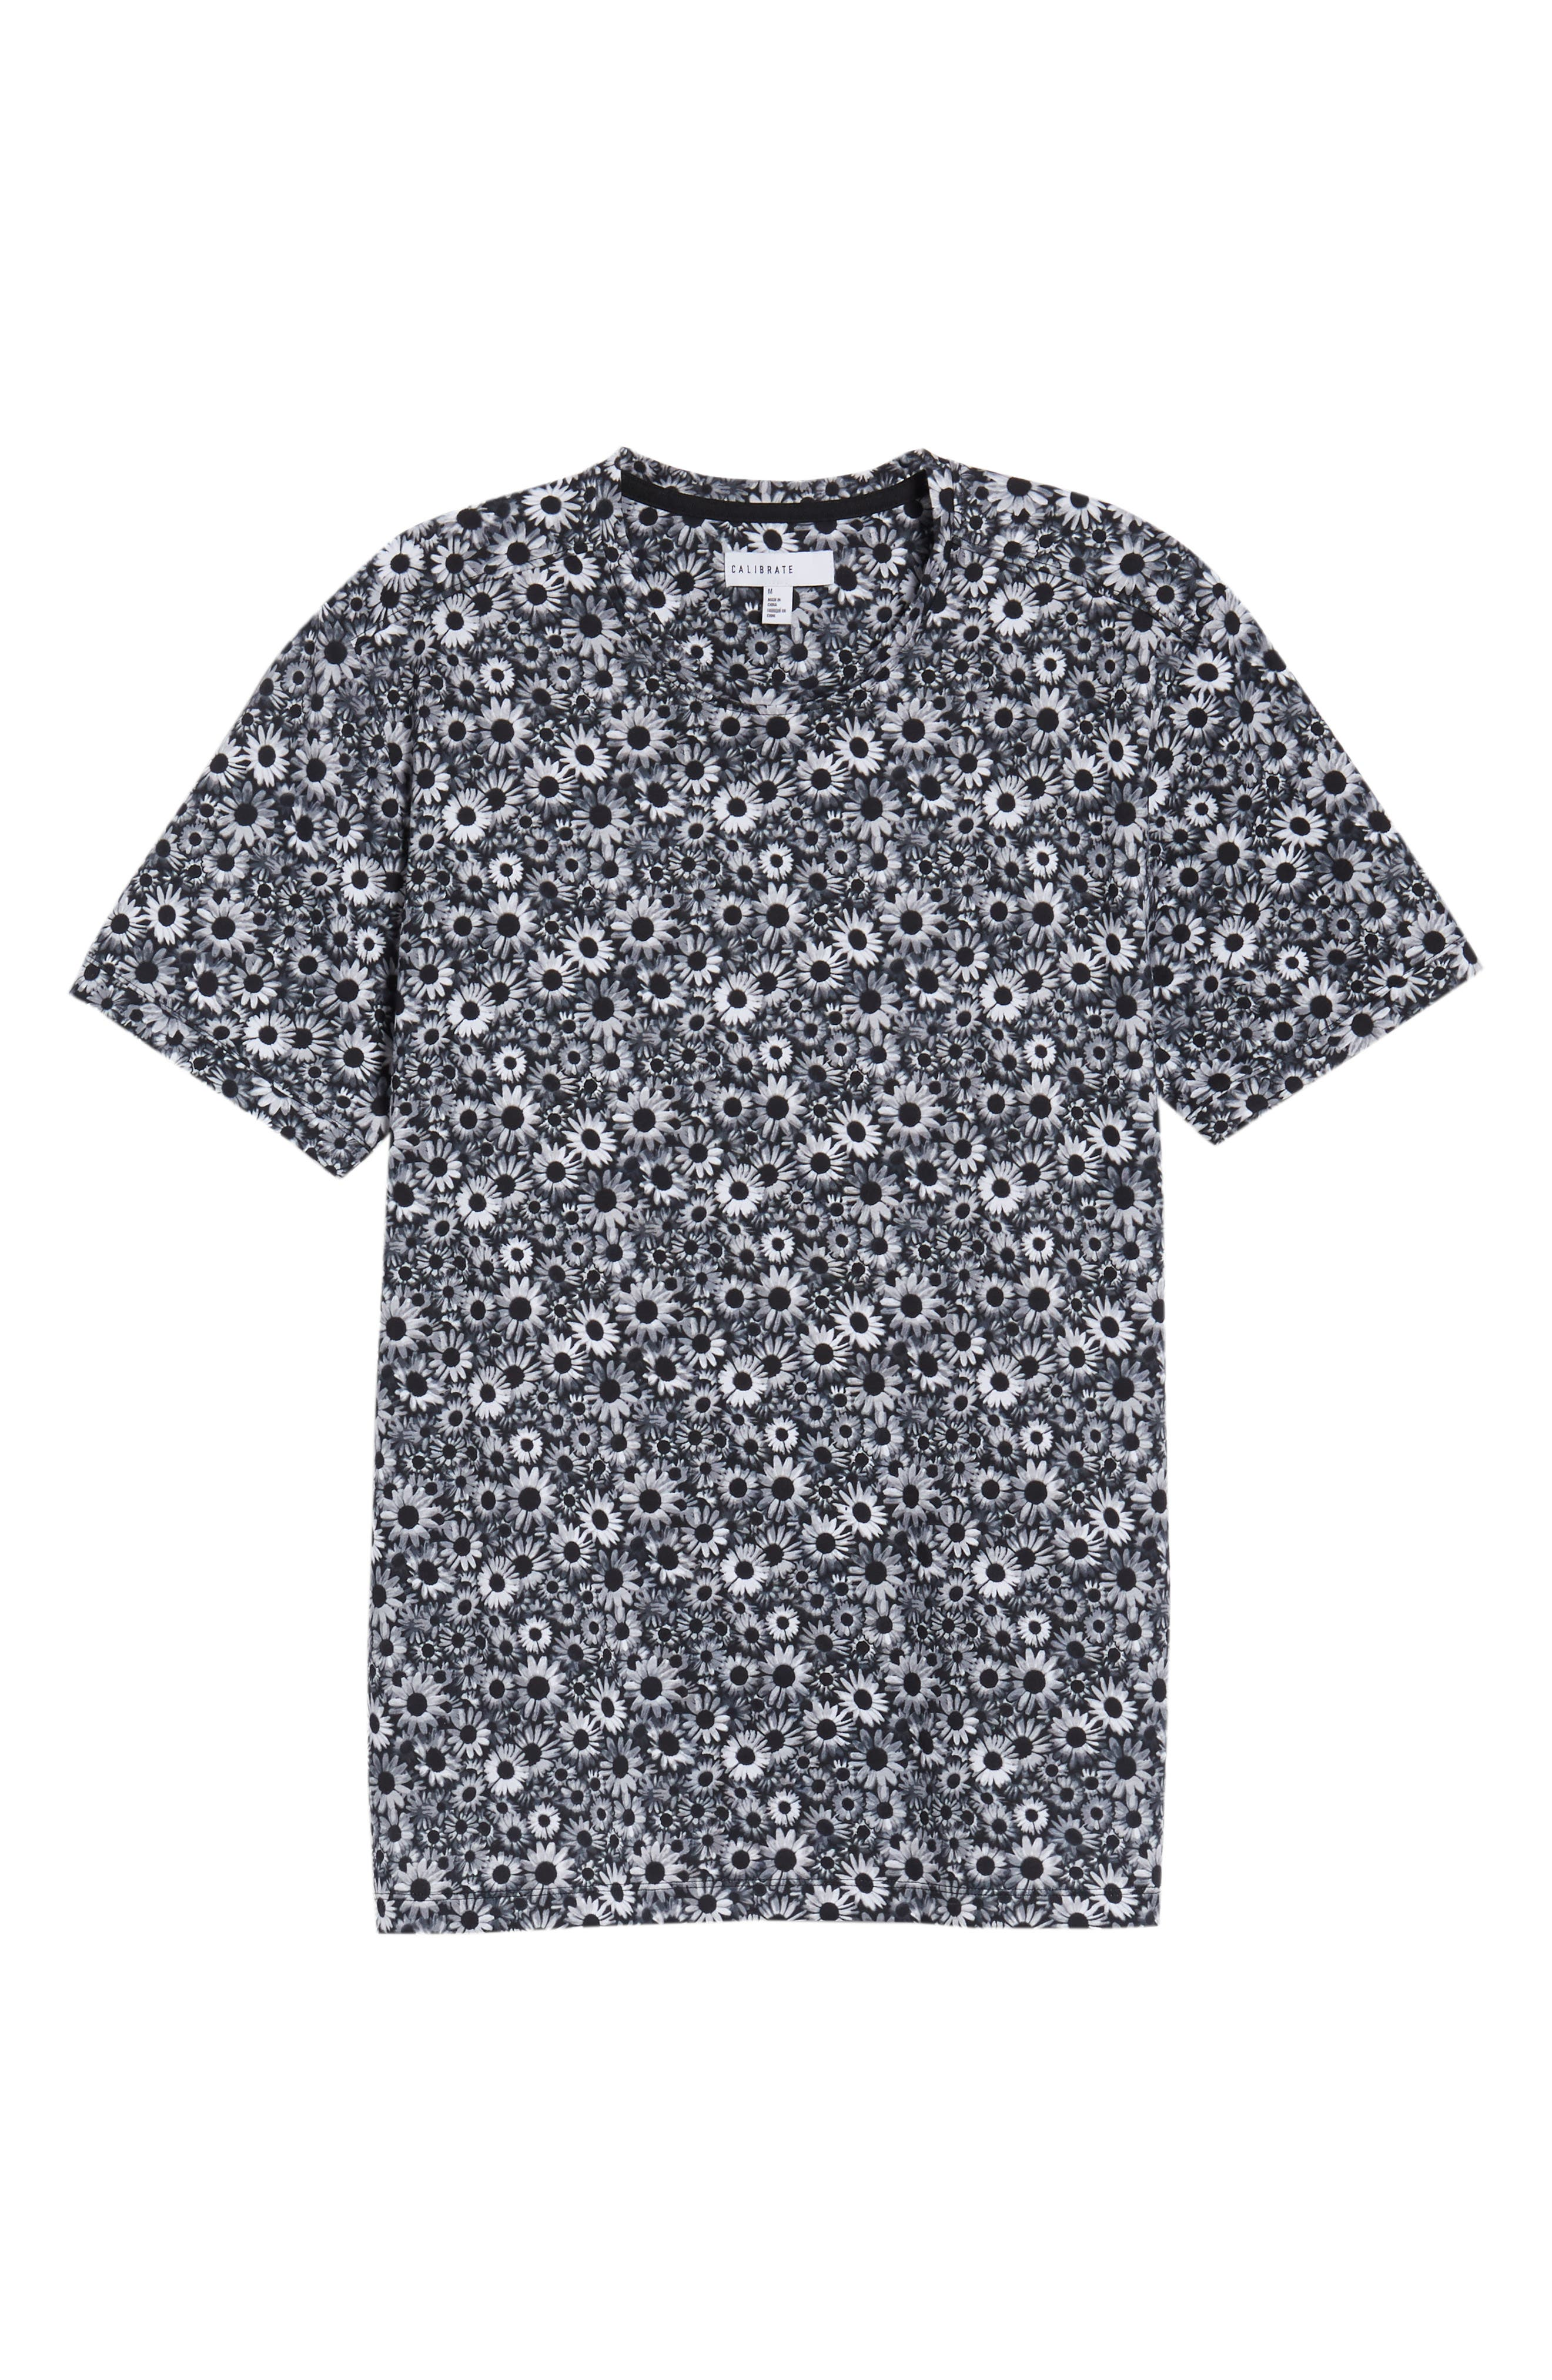 Print T-Shirt,                             Alternate thumbnail 6, color,                             Black White Daisy Floral